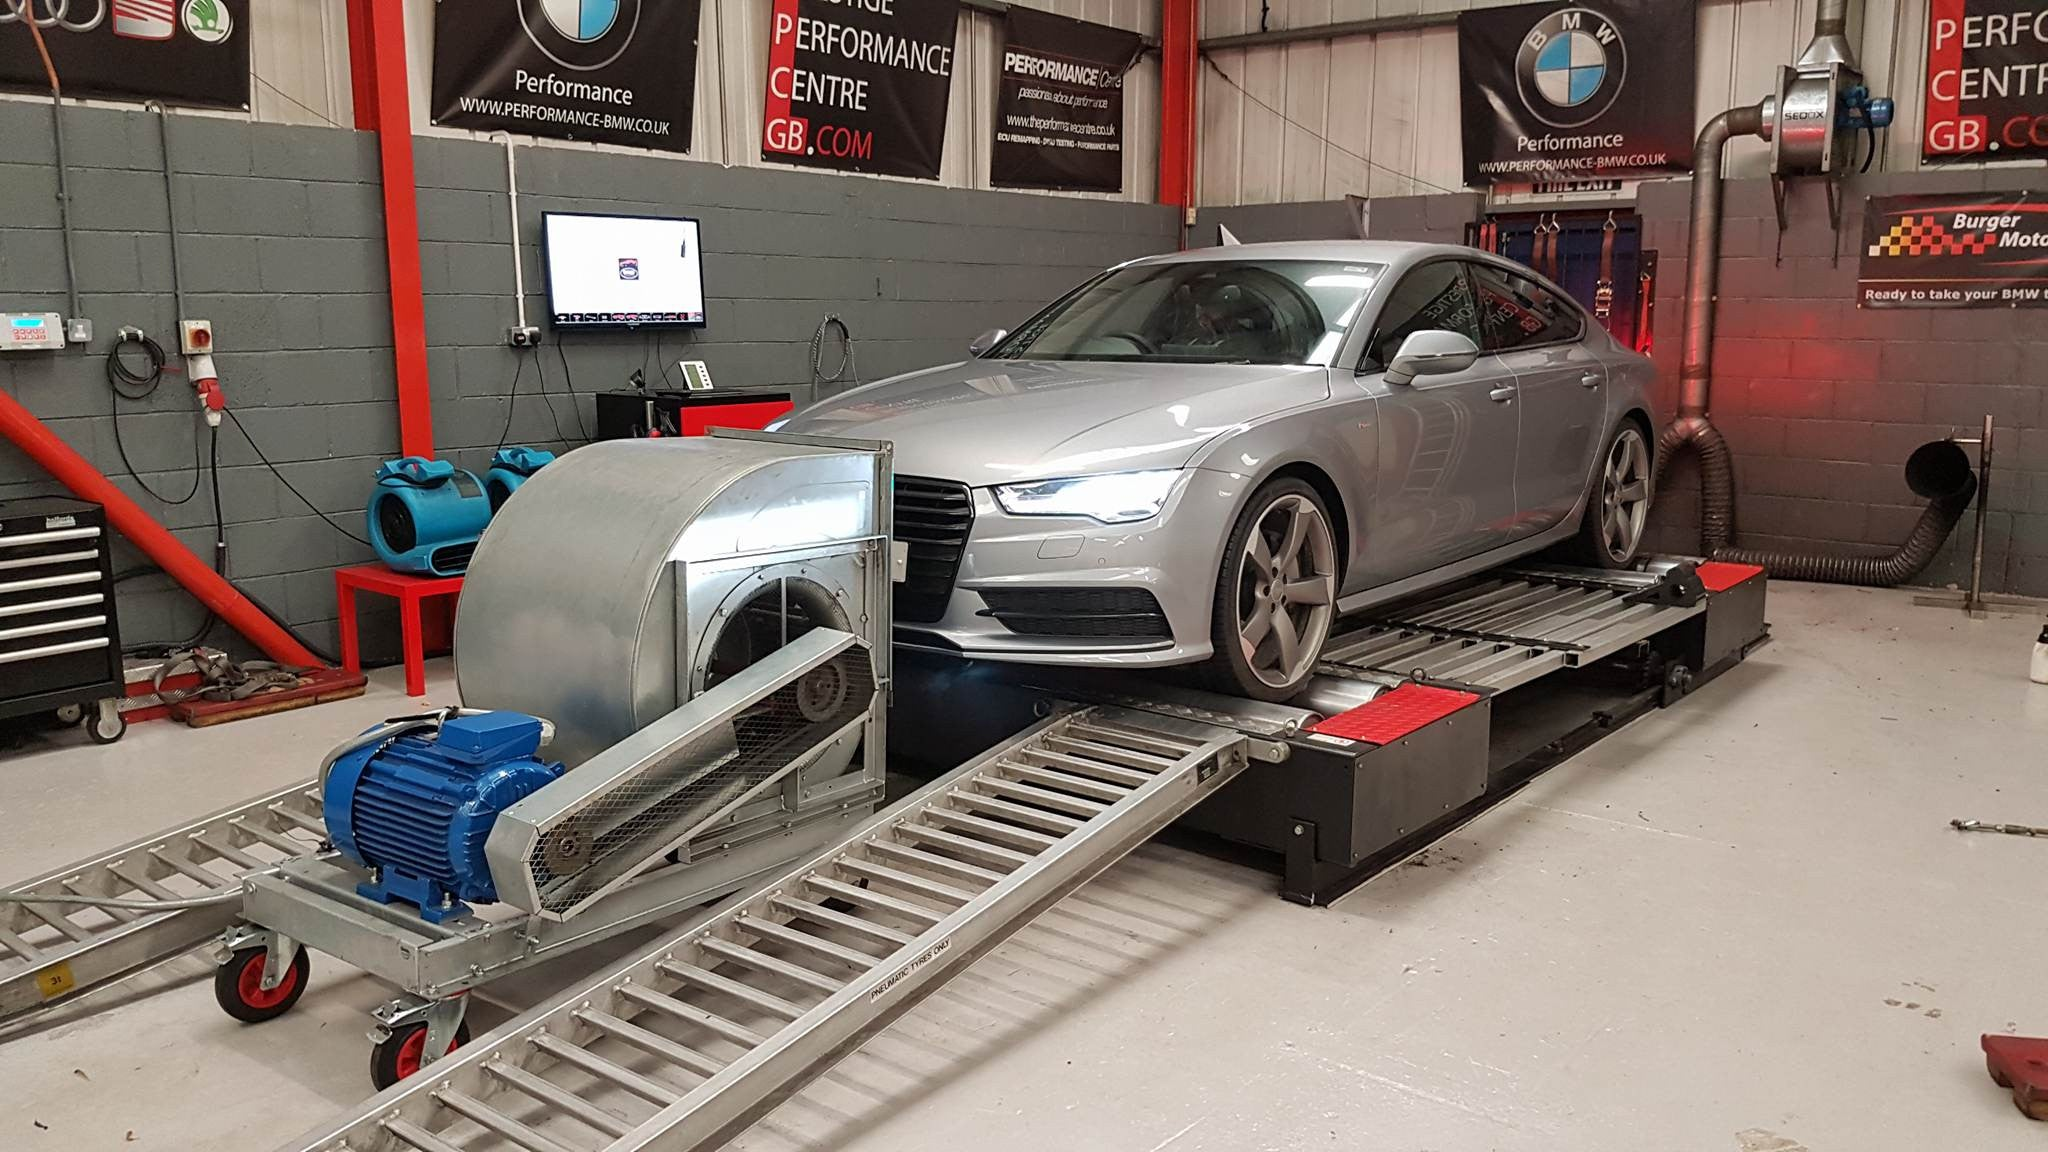 Audi A7 3.0 272 - CustomPro remap software